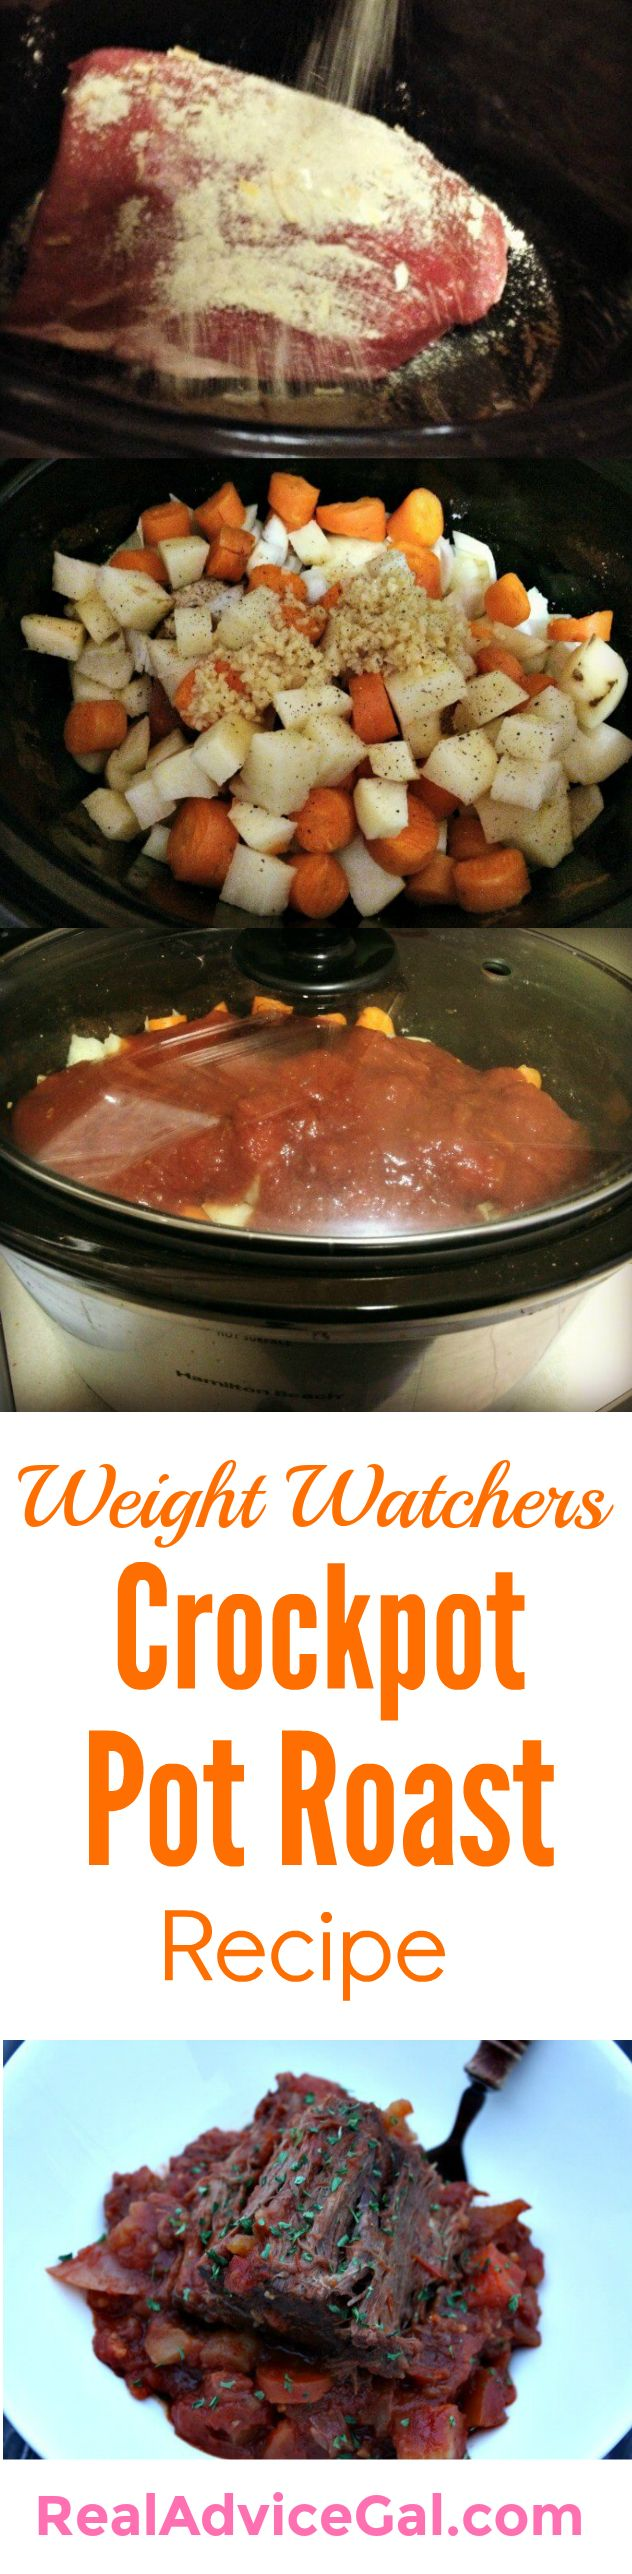 Prepare a delicious meal that the whole family will love. Try this easy Weight Watchers Crockpot Pot Roast Recipe